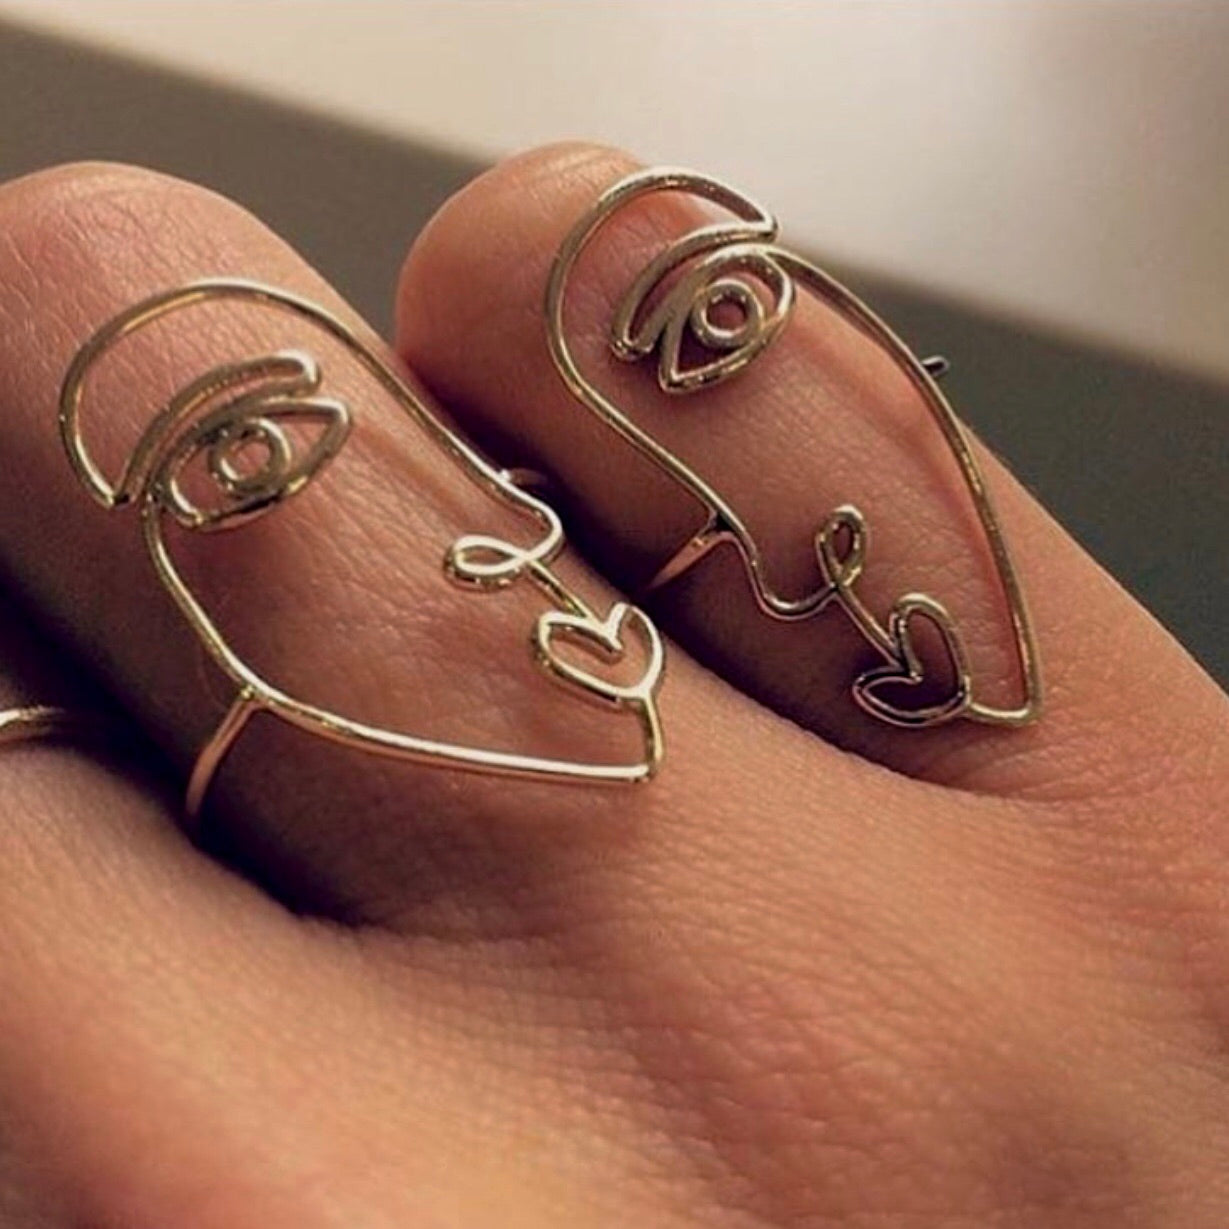 biker style ring indian for head index antique face chief vintage mohican rings silver product men ancient finger brand steel stainless punk